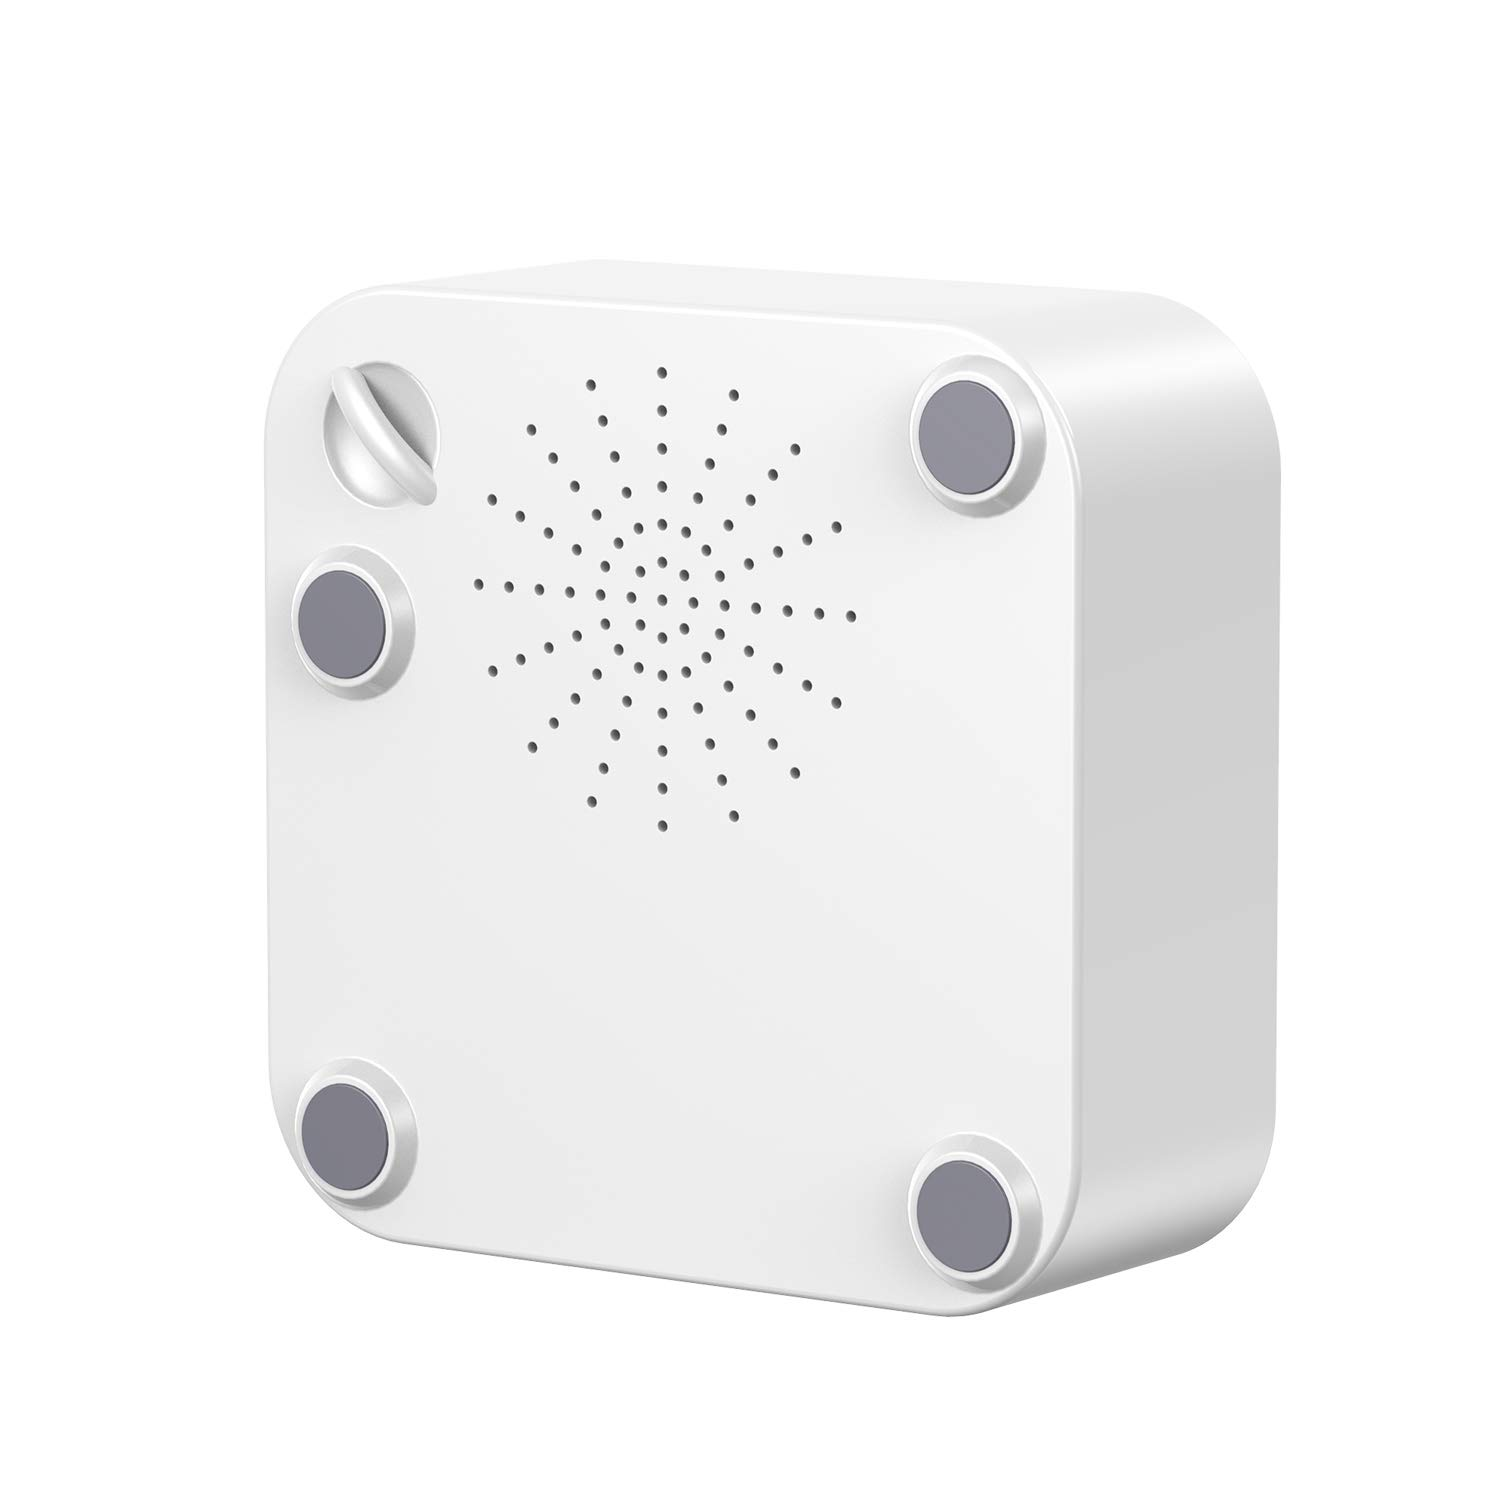 Adult Office Baby /& Travel White AIMENO Sleep Sound Machine for Baby Portable Sleep Sound Therapy for Home 3 Auto-Off Timer /& Memory Function Kid White Noise Machine